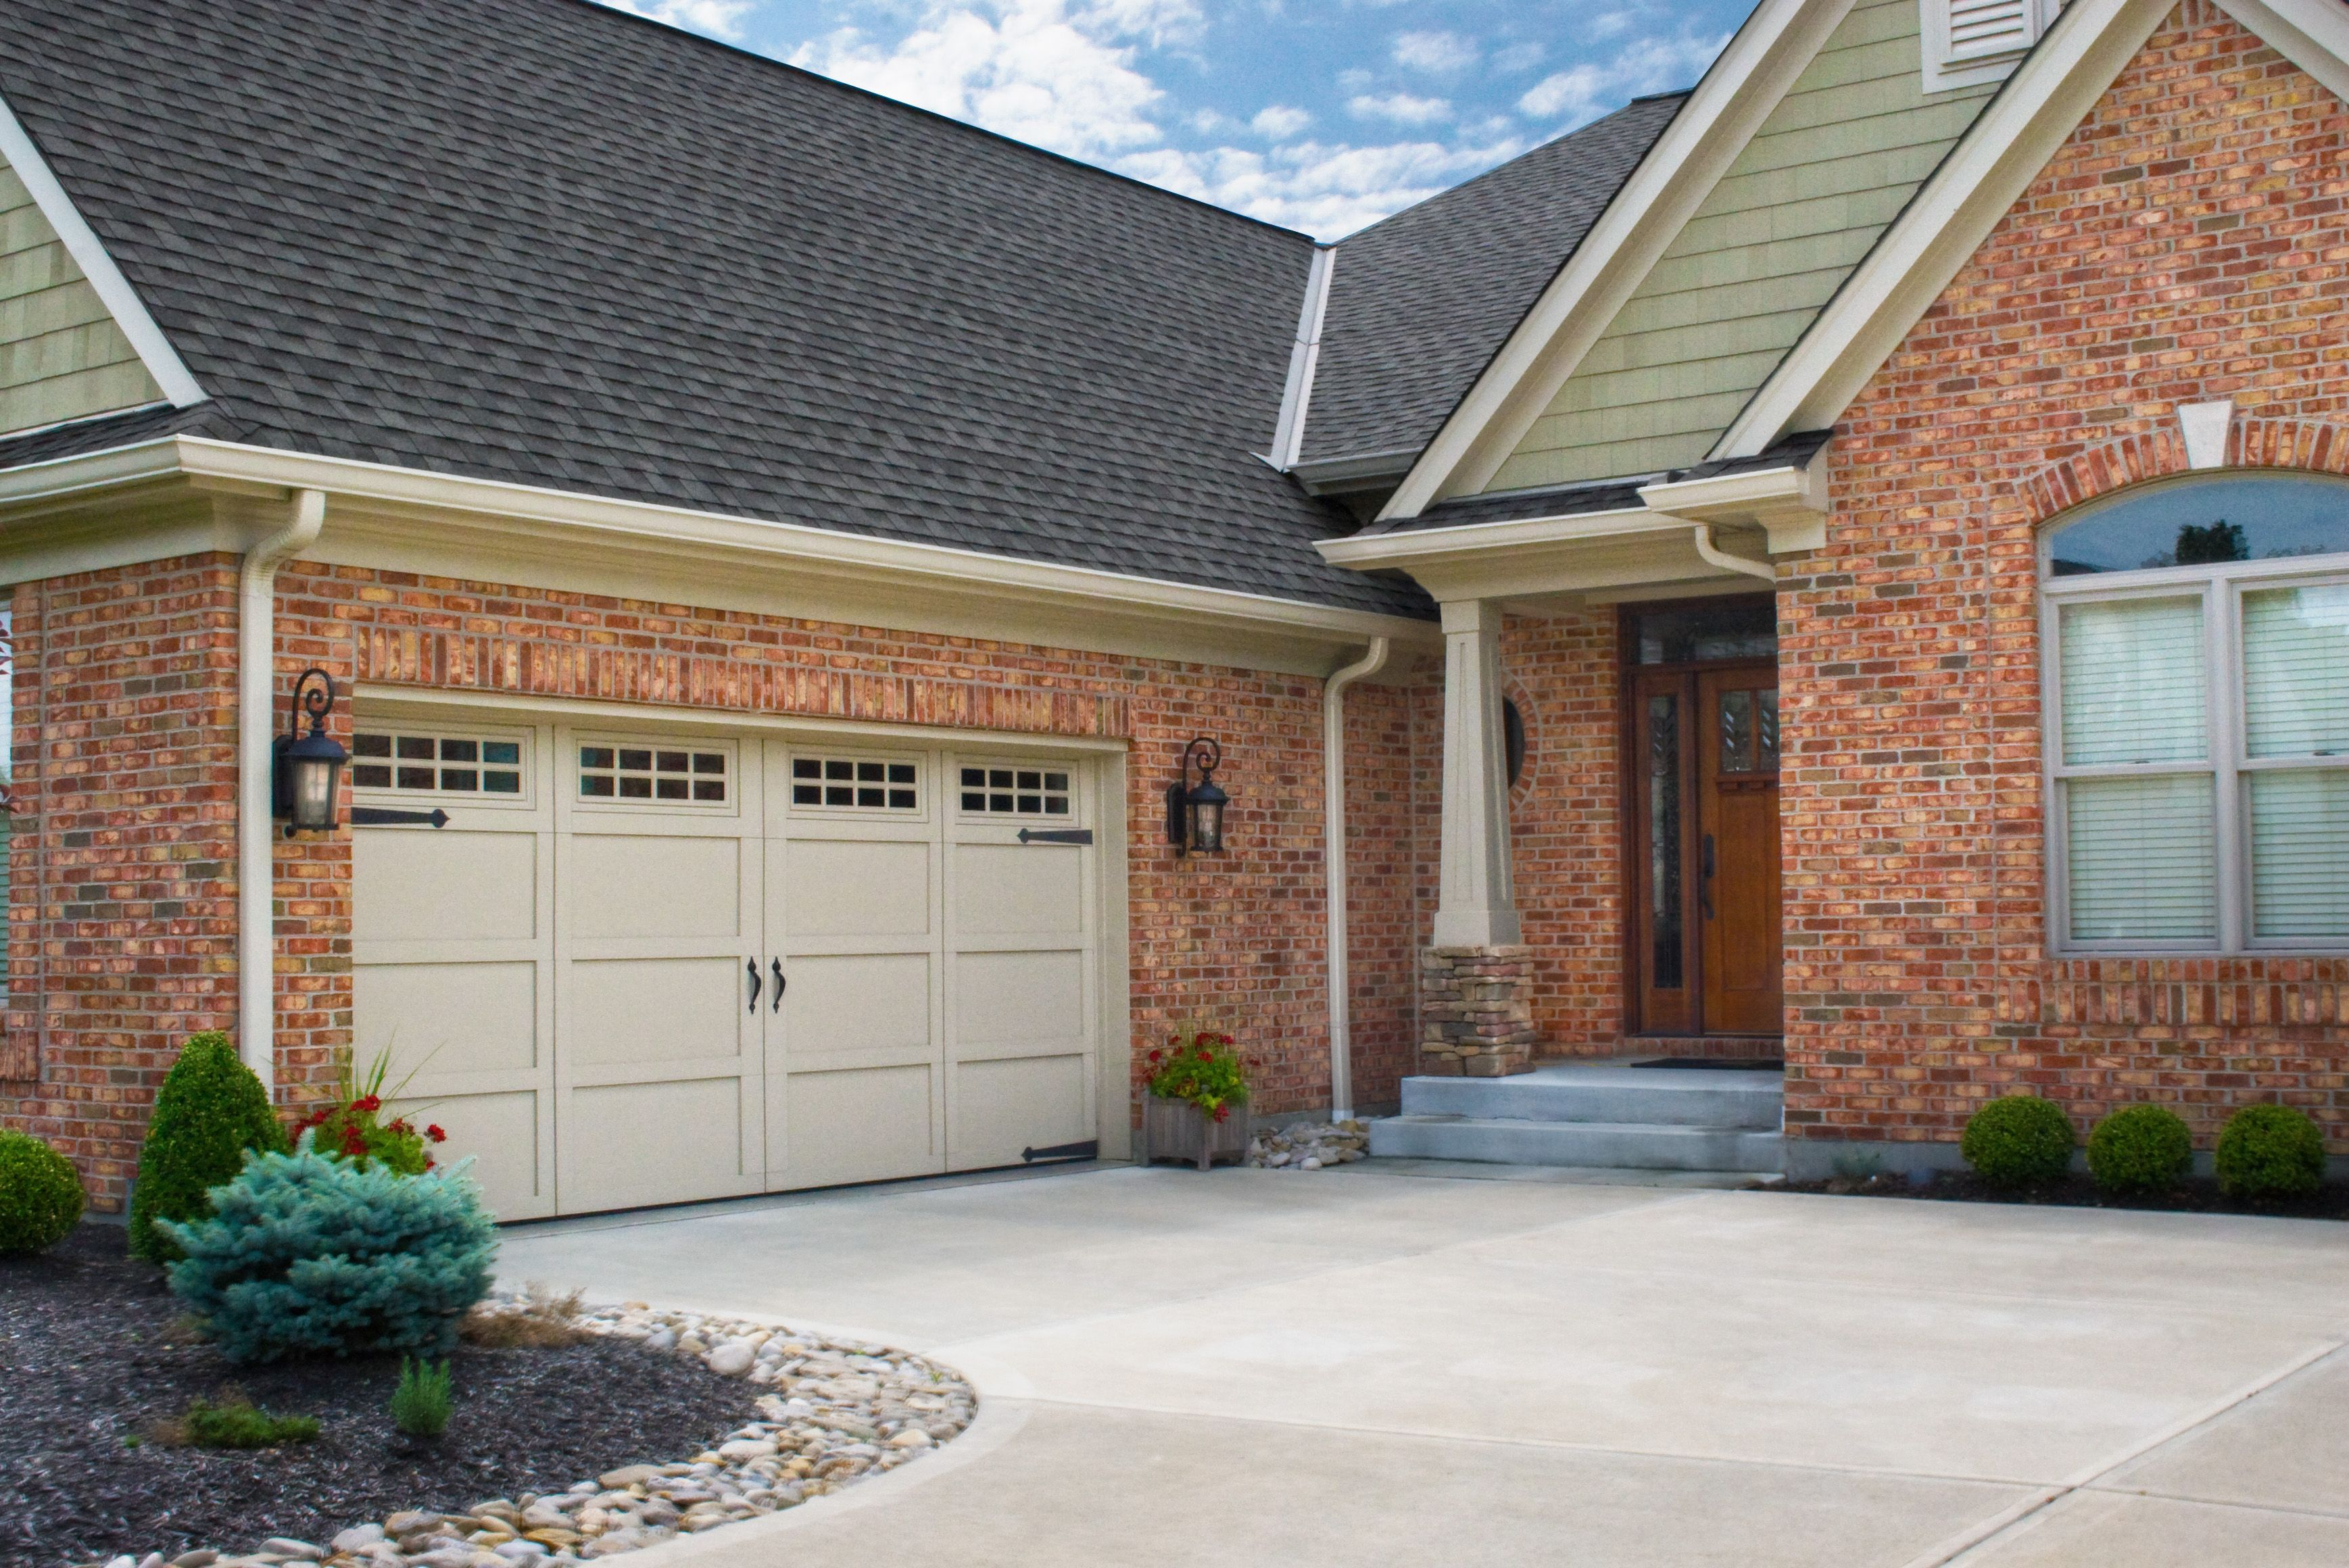 Cost To Install A New Garage Door In Calgary In 2020 Garage Doors Affordable Garage Doors Garage Doors For Sale